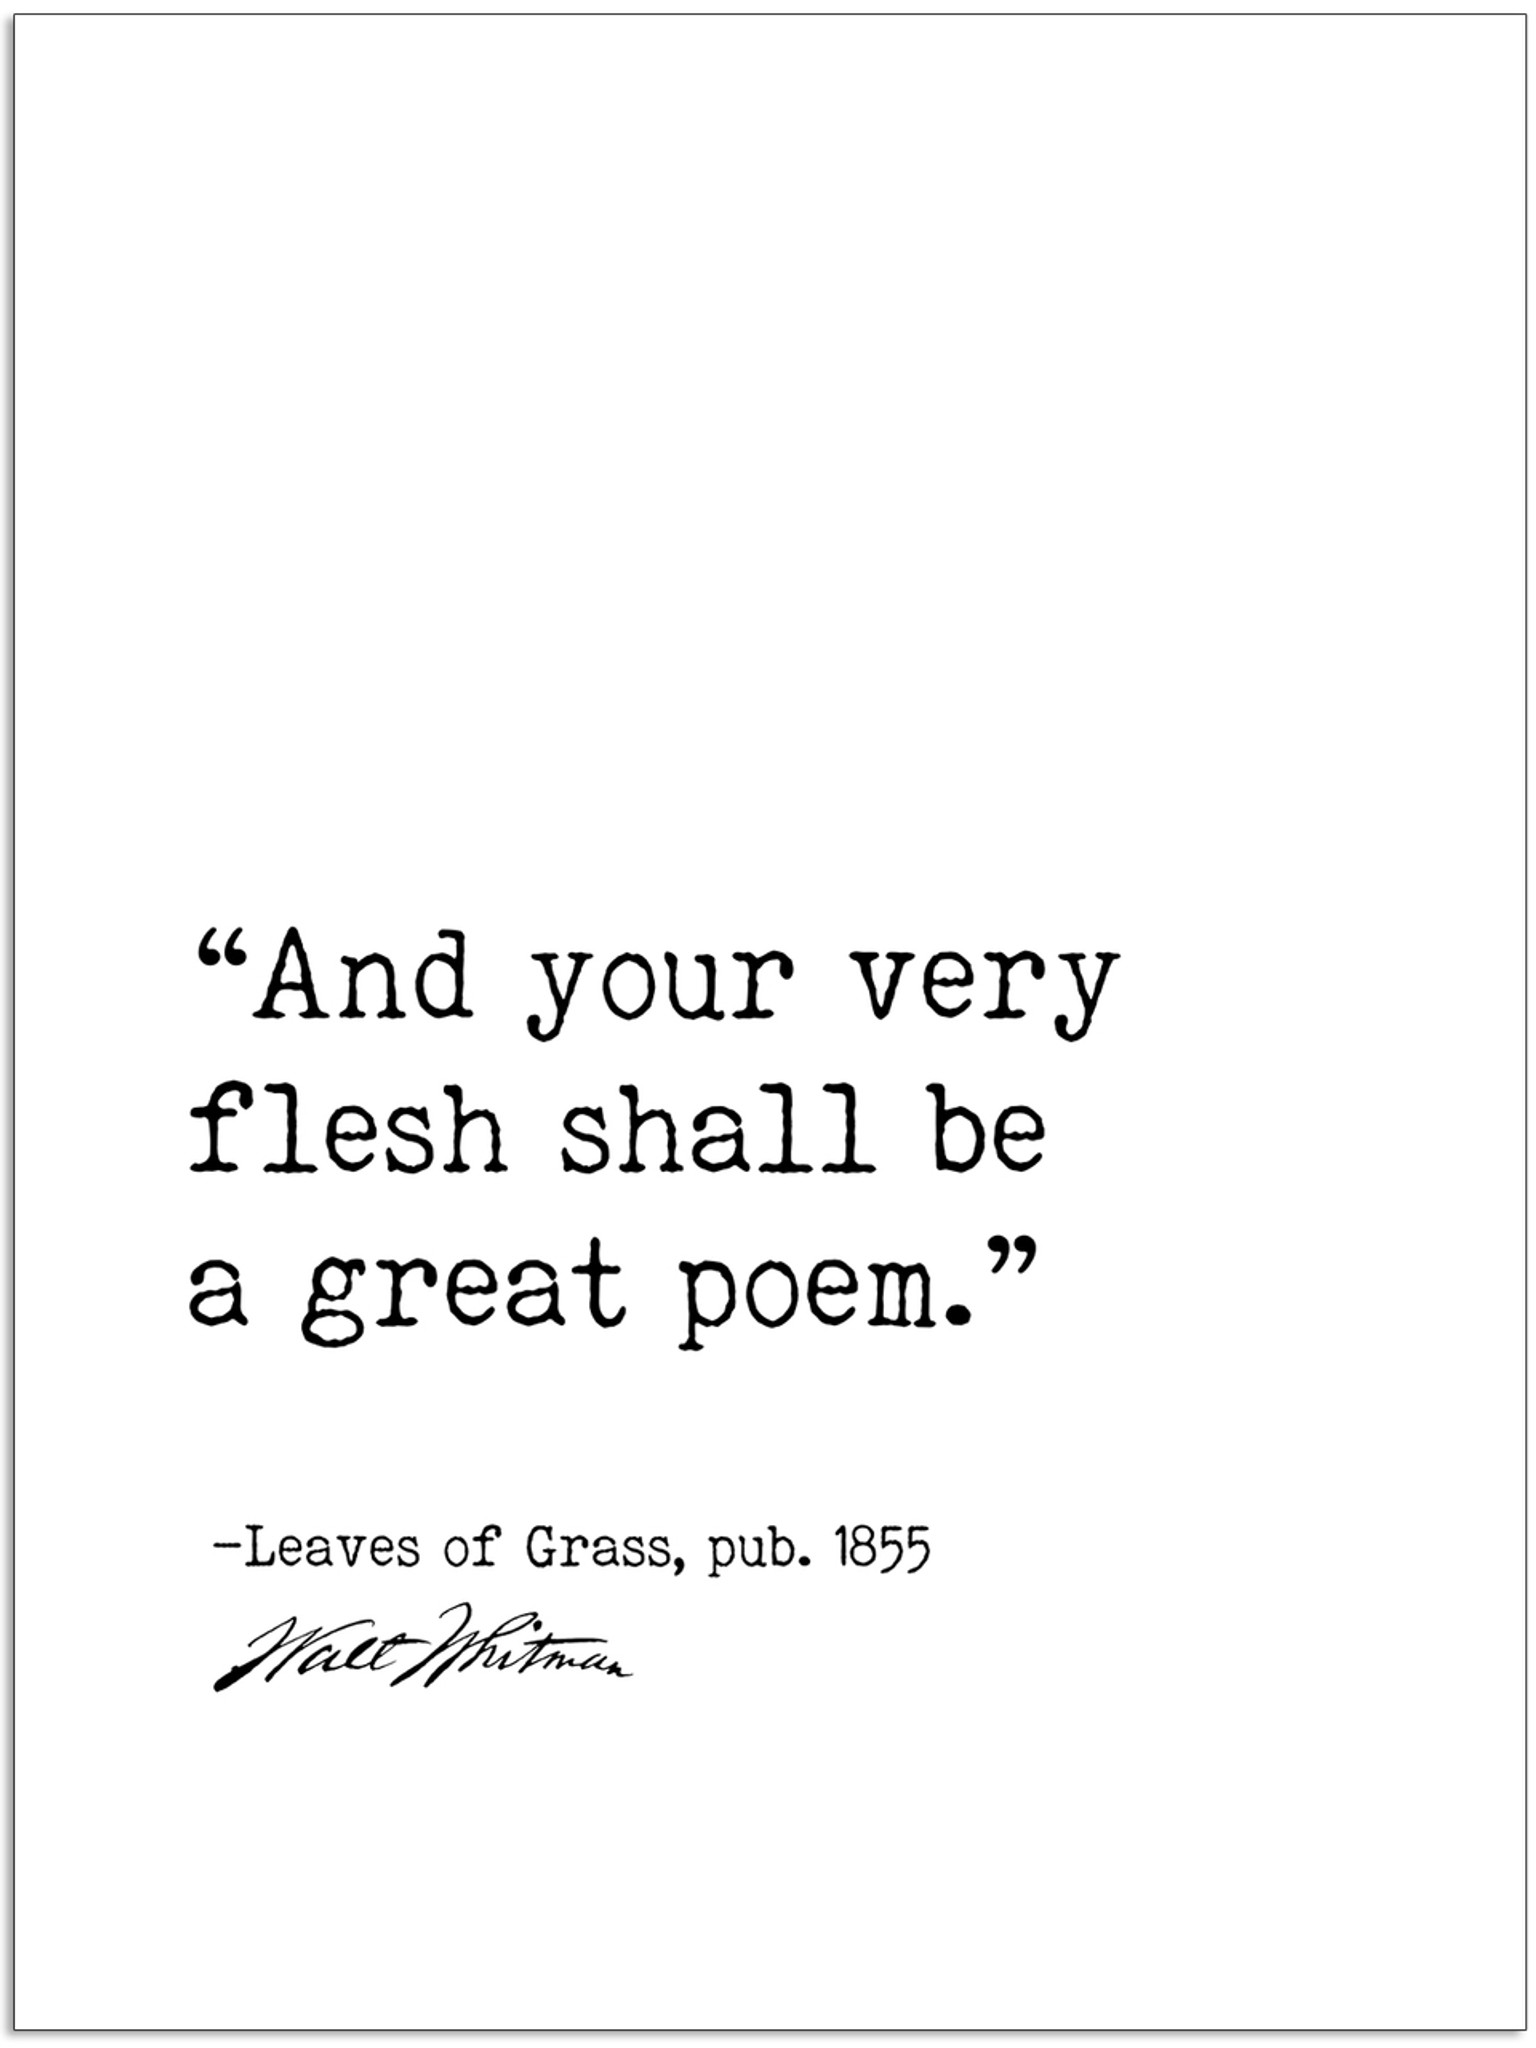 And Your Very Flesh Shall Be A Great Poem Walt Whitman Leaves Of Grass Author Signature Literary Fine Art Print For Home Office Or School